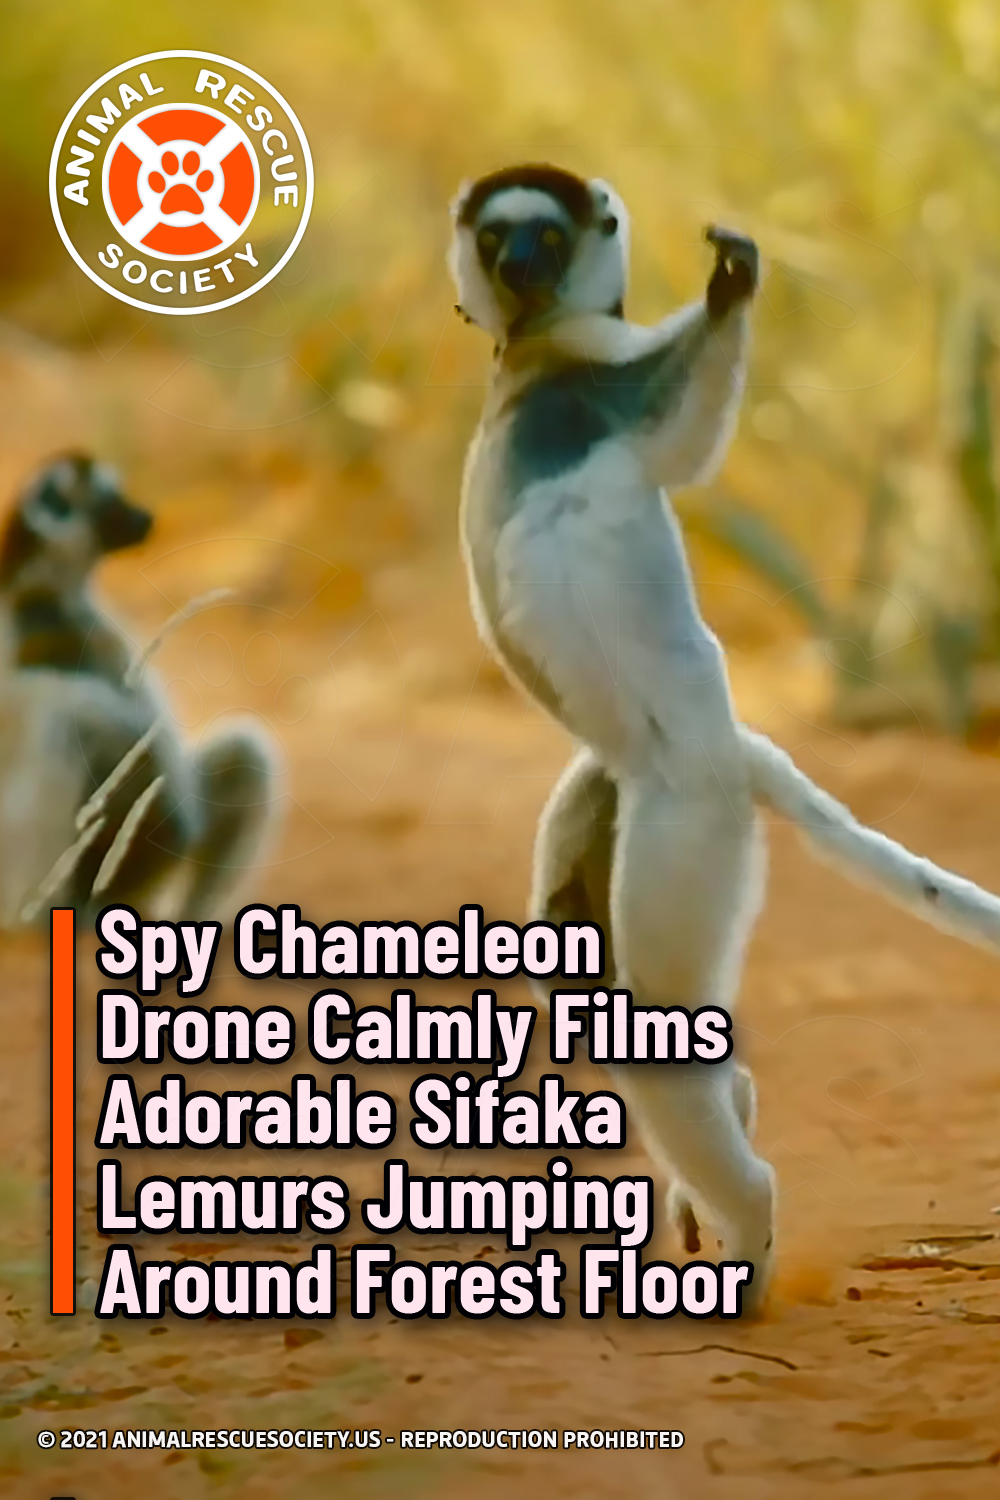 Spy Chameleon Drone Calmly Films Adorable Sifaka Lemurs Jumping Around Forest Floor